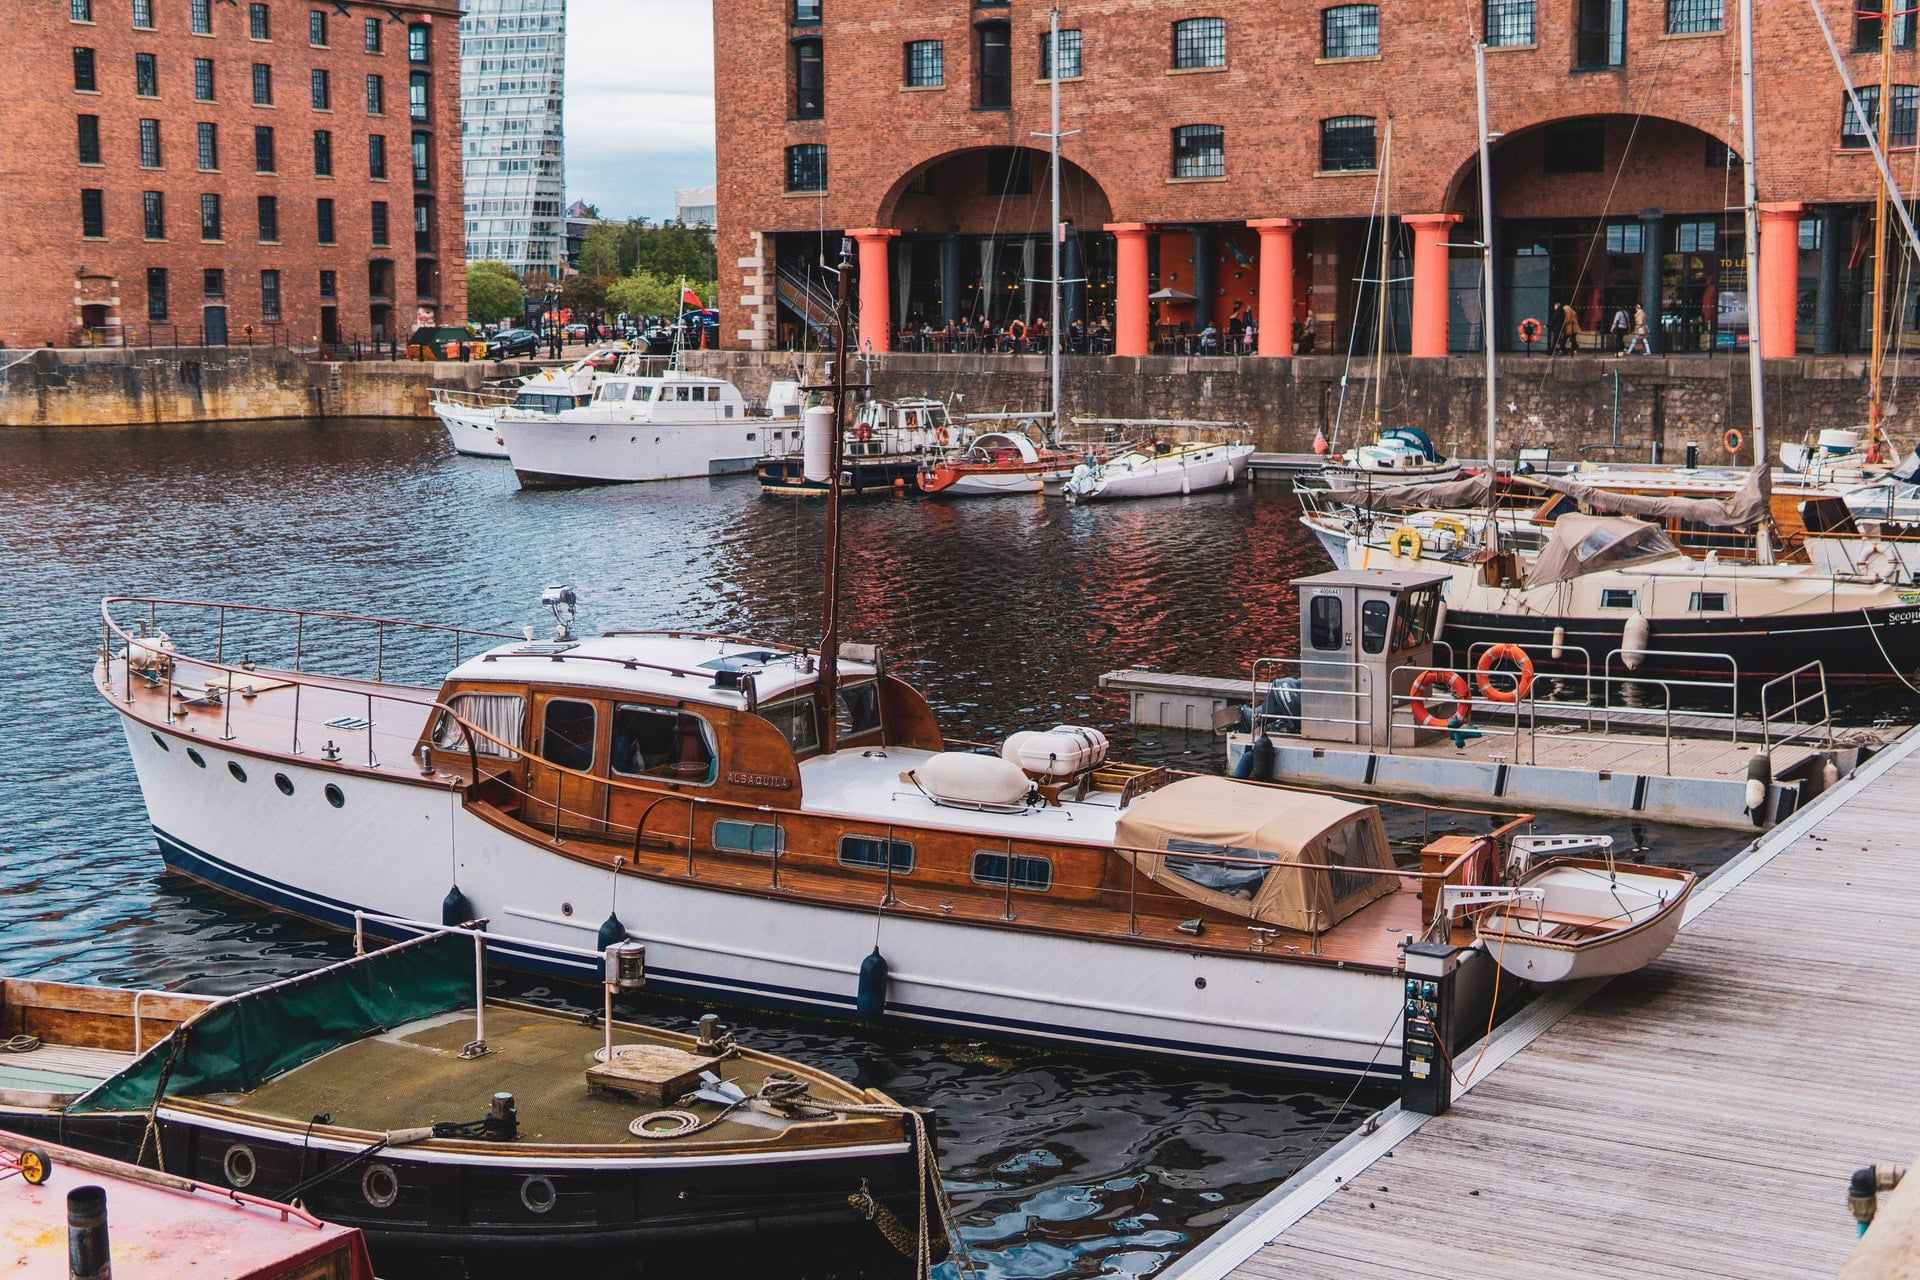 white-and-brown-boat-on-boatyard-at-liverpool-docks